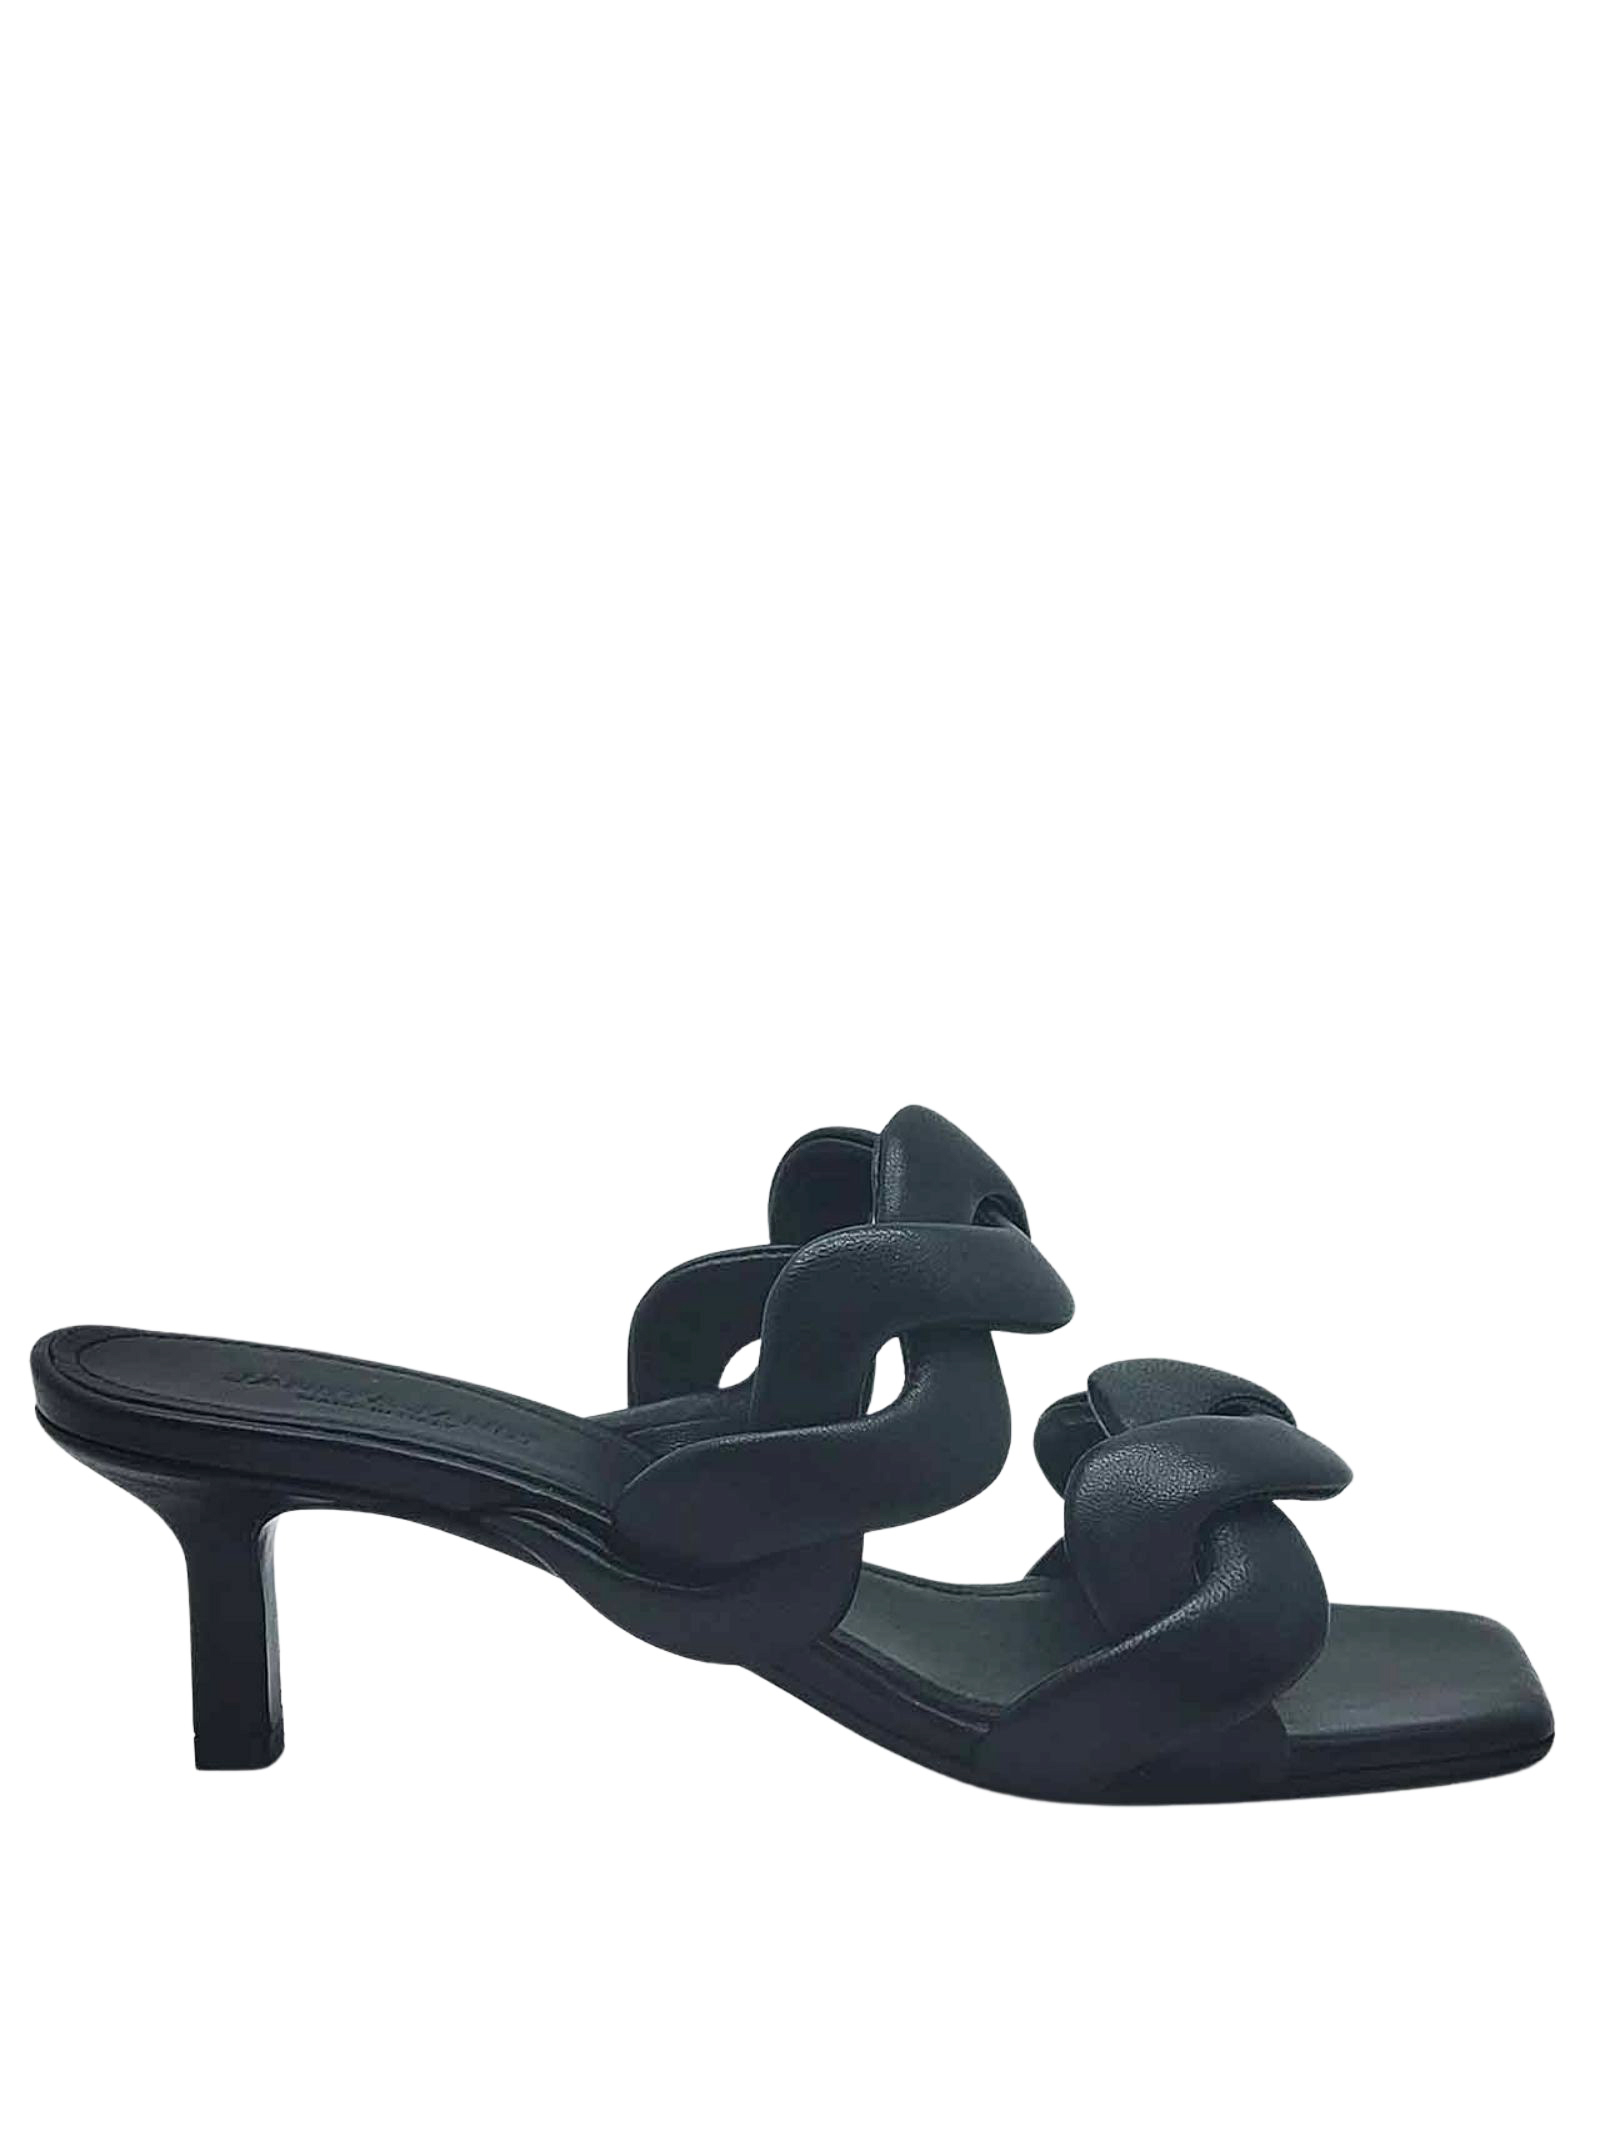 Women's Shoes Sandals in Black Leather with Double Braided Band Heel 60 Janet & Janet | Sandals | 01153001